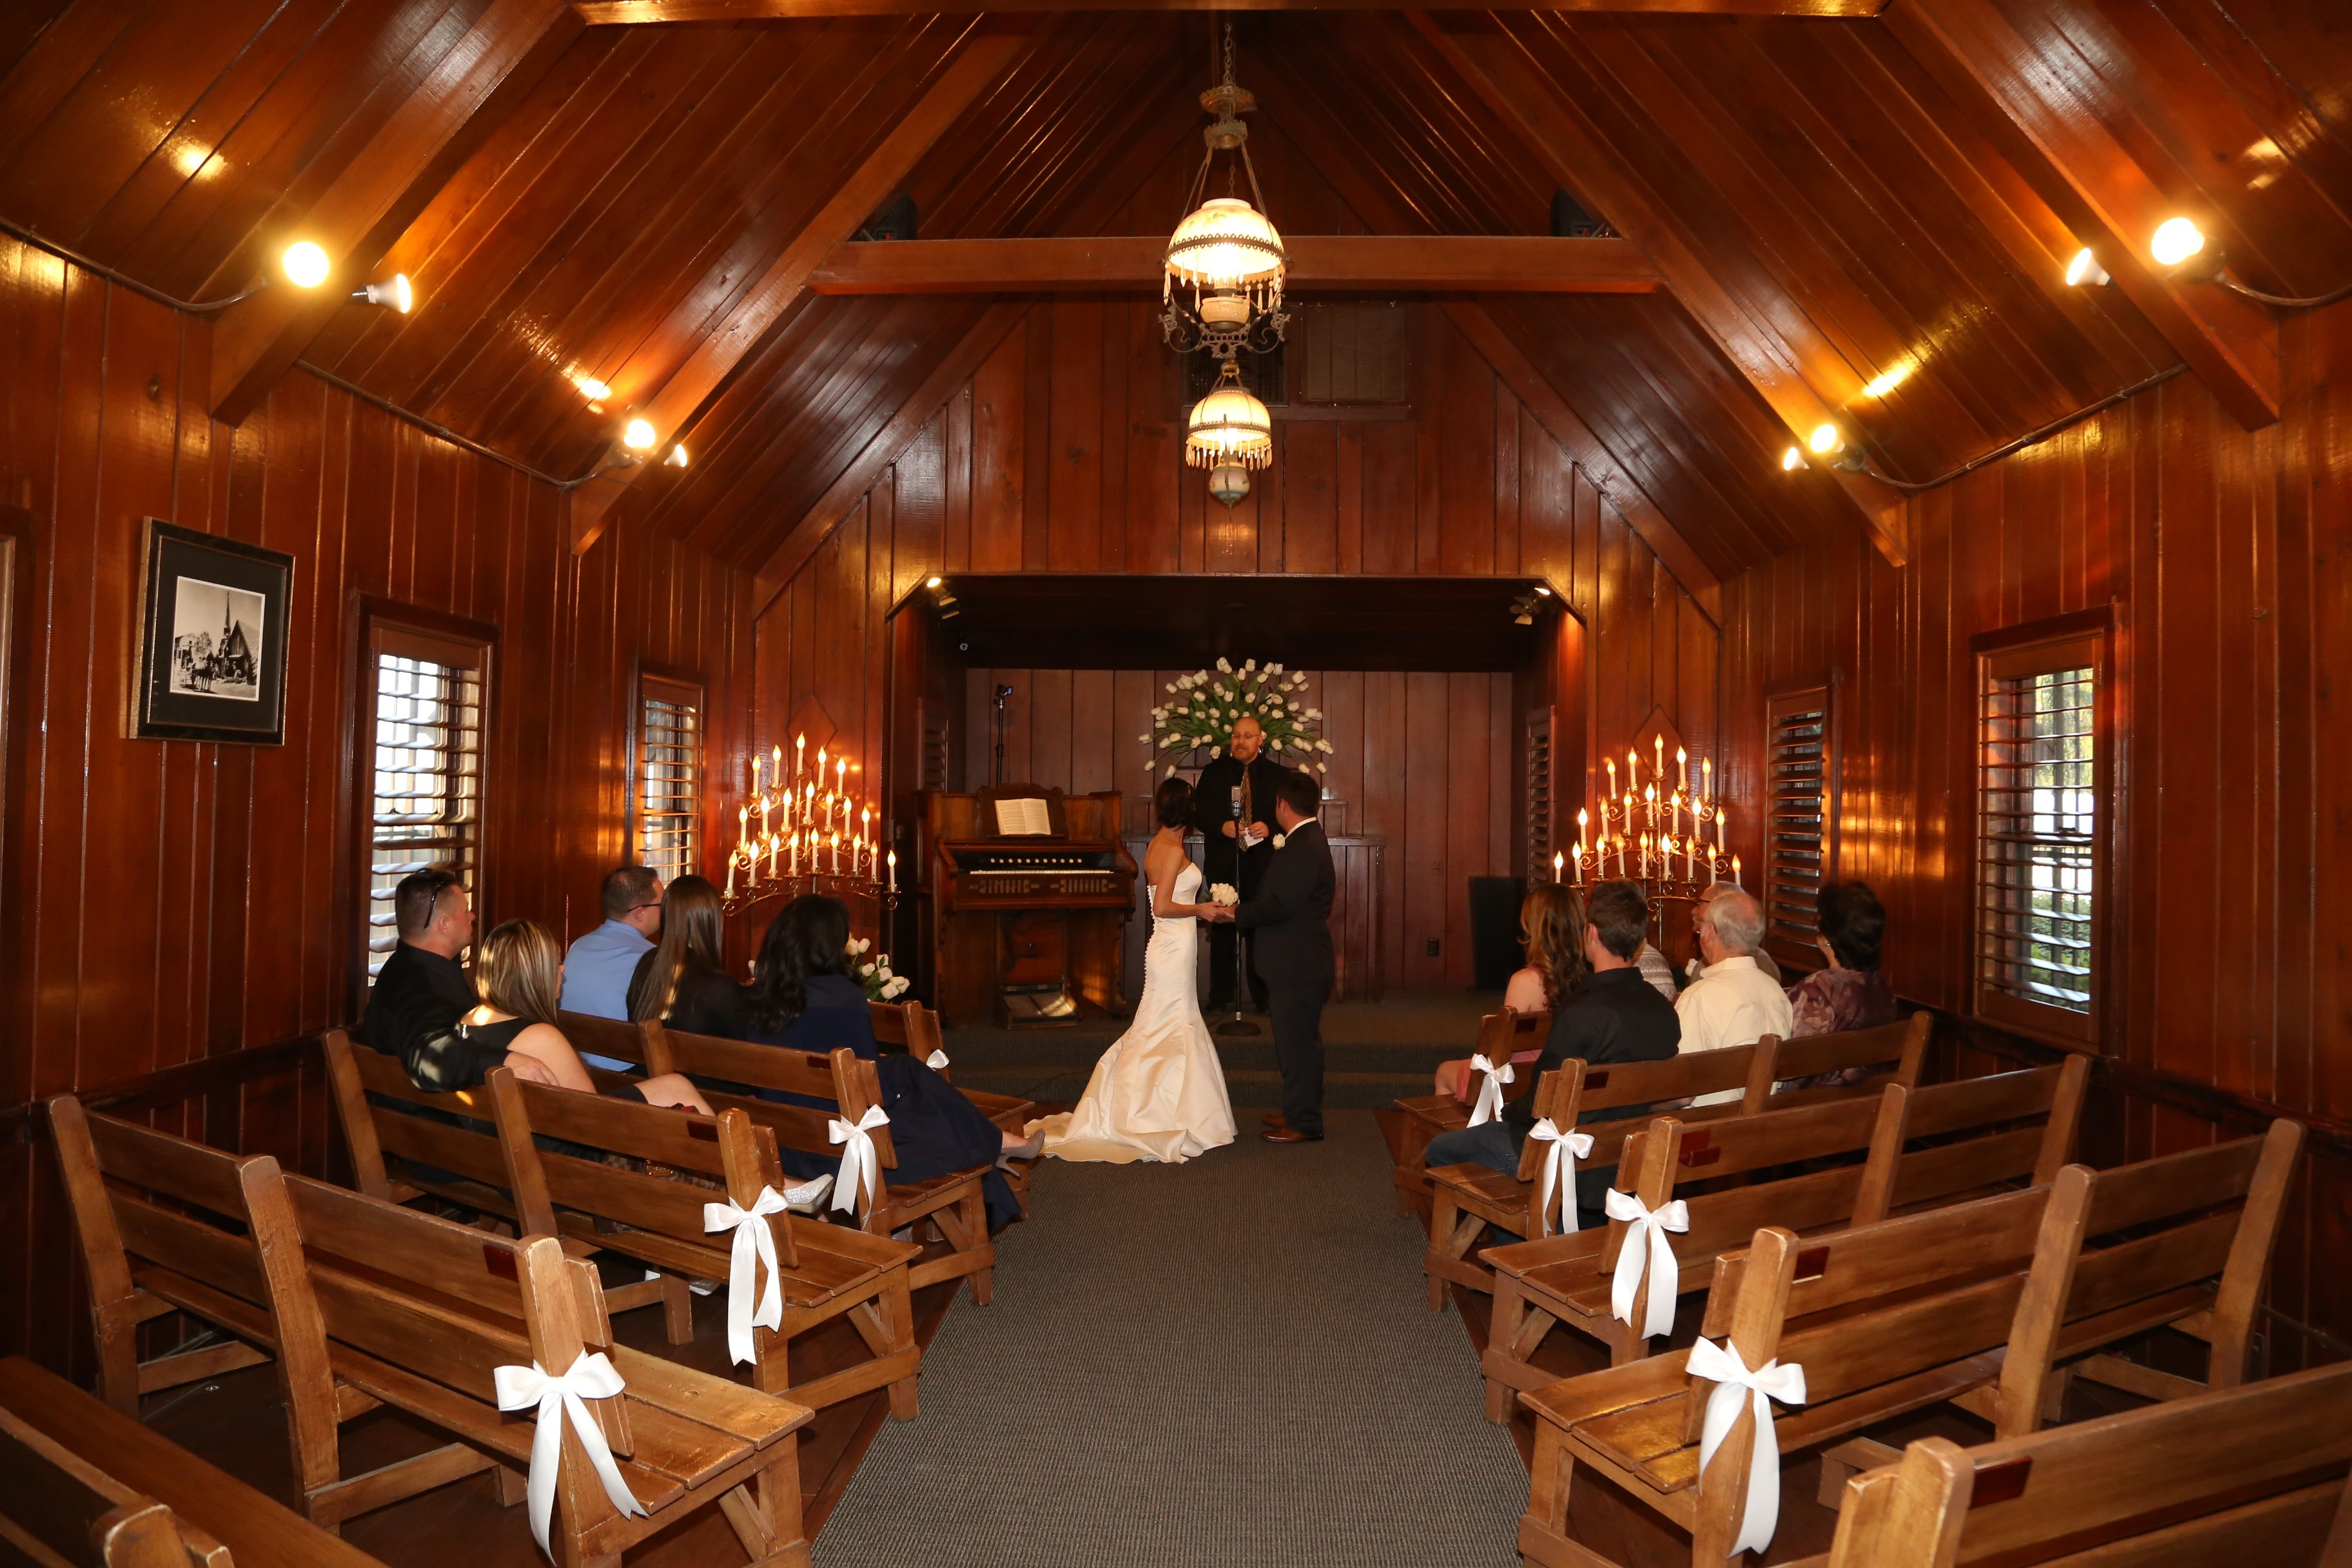 Little church of the west happily ever after pinterest for Little las vegas